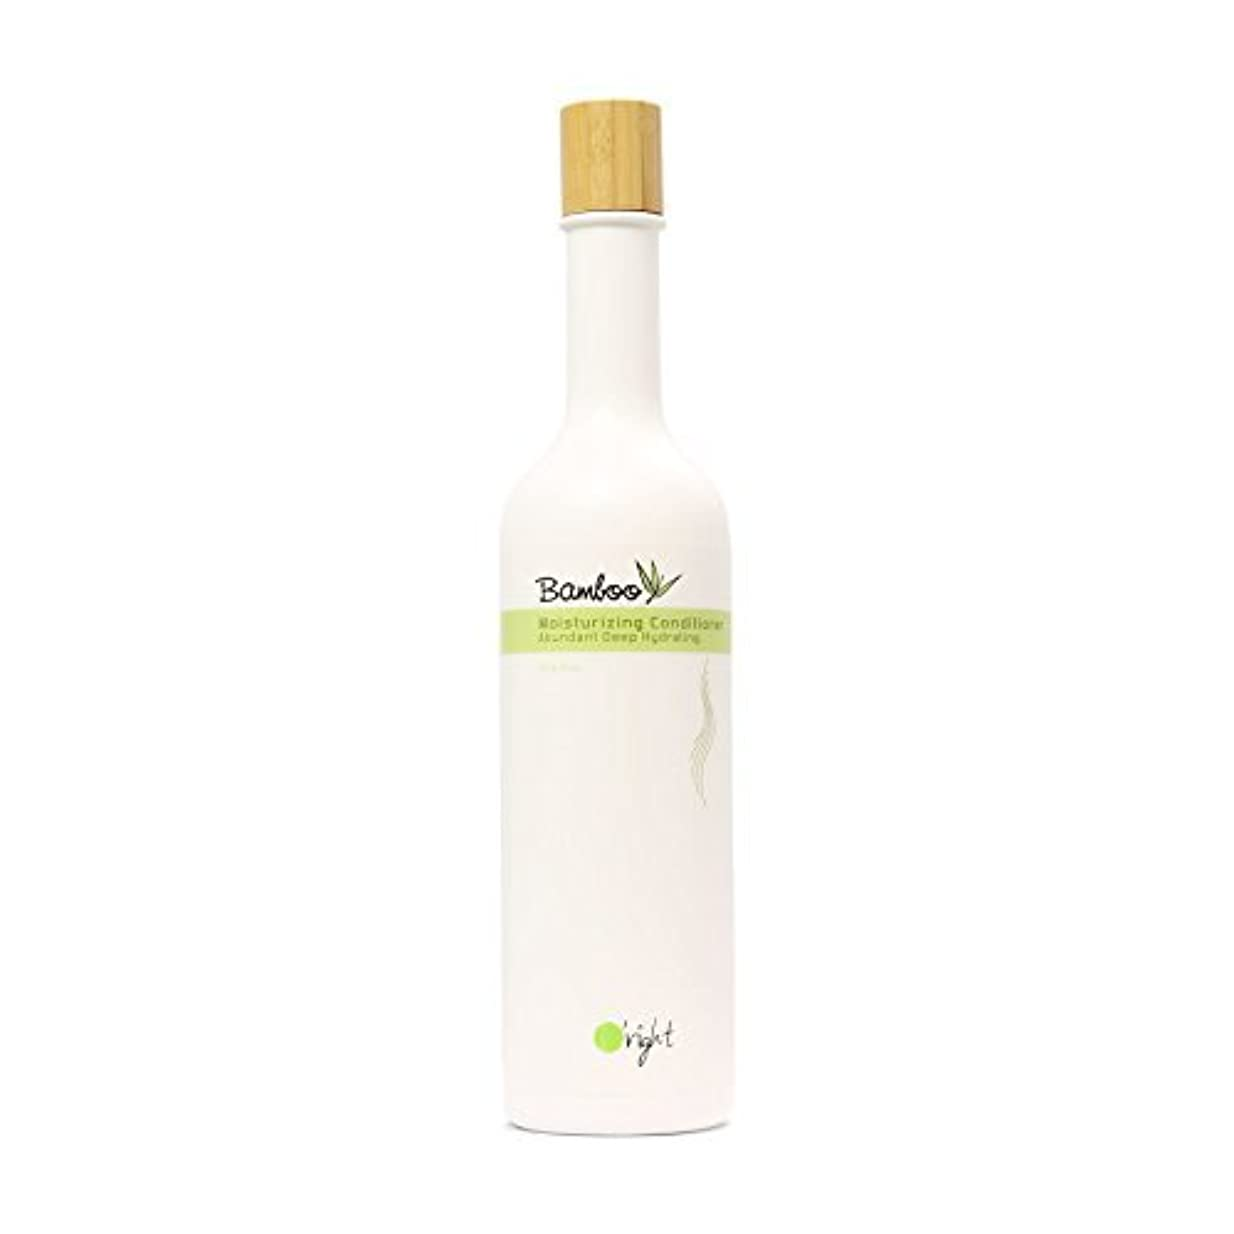 O'right Bamboo Moisturizing Conditioner 400ml by O'Right